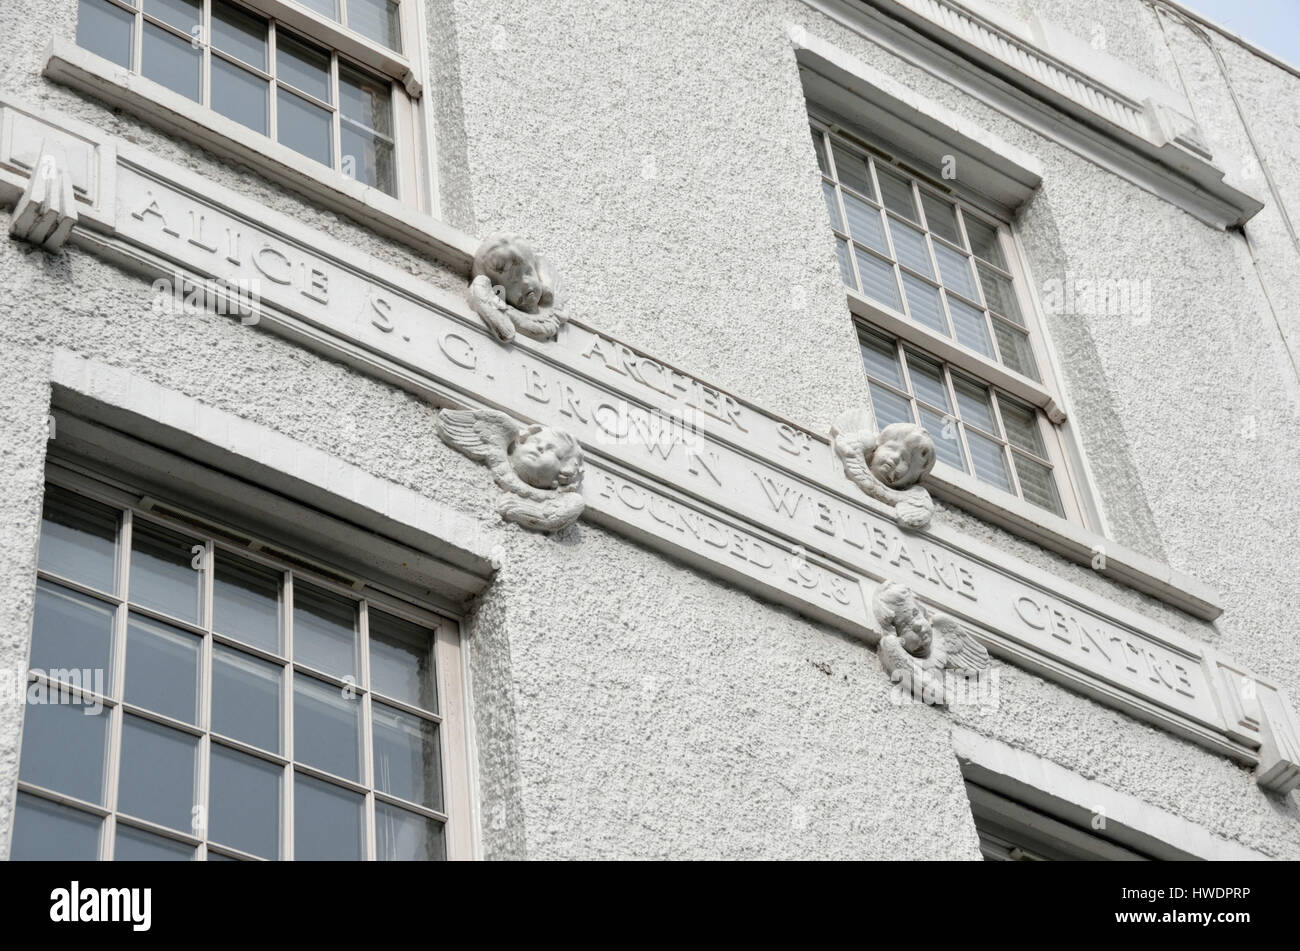 The former Alice S. G. Brown Welfare Centre founded in 1918 in Westbourne Grove, Notting Hill, London, UK. - Stock Image